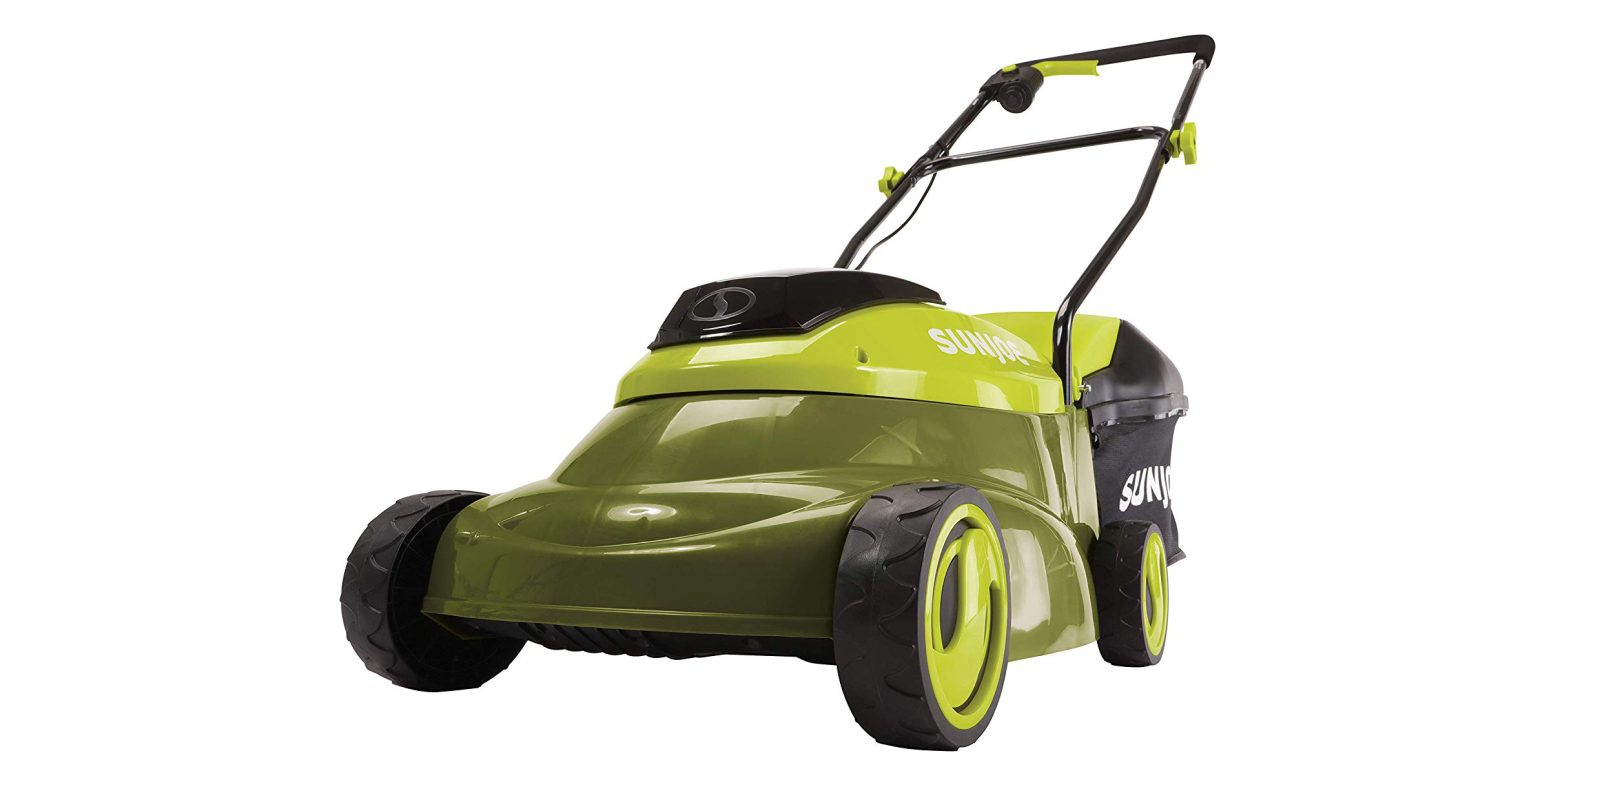 Sun Joe 14-inch Electric Lawn Mower hits new low at $139, more in today's Green Deals